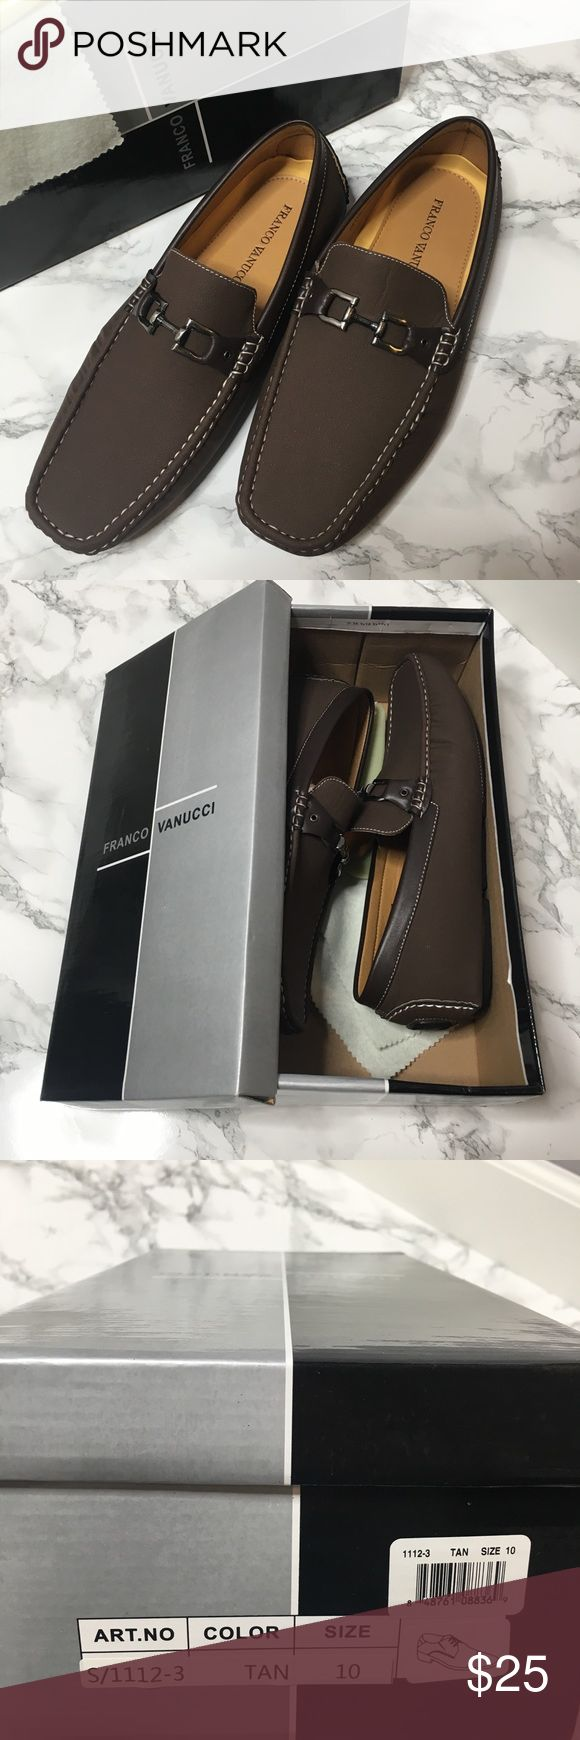 Franco Vanucci Brown Loafers. Brand new Franco Vanucci Brown Loafer slip ons with silver clasp detail.  Still in box with fresh leather smell. (Box is pictured wrong, I don't know why ha) Franco Vanucci Shoes Loafers & Slip-Ons